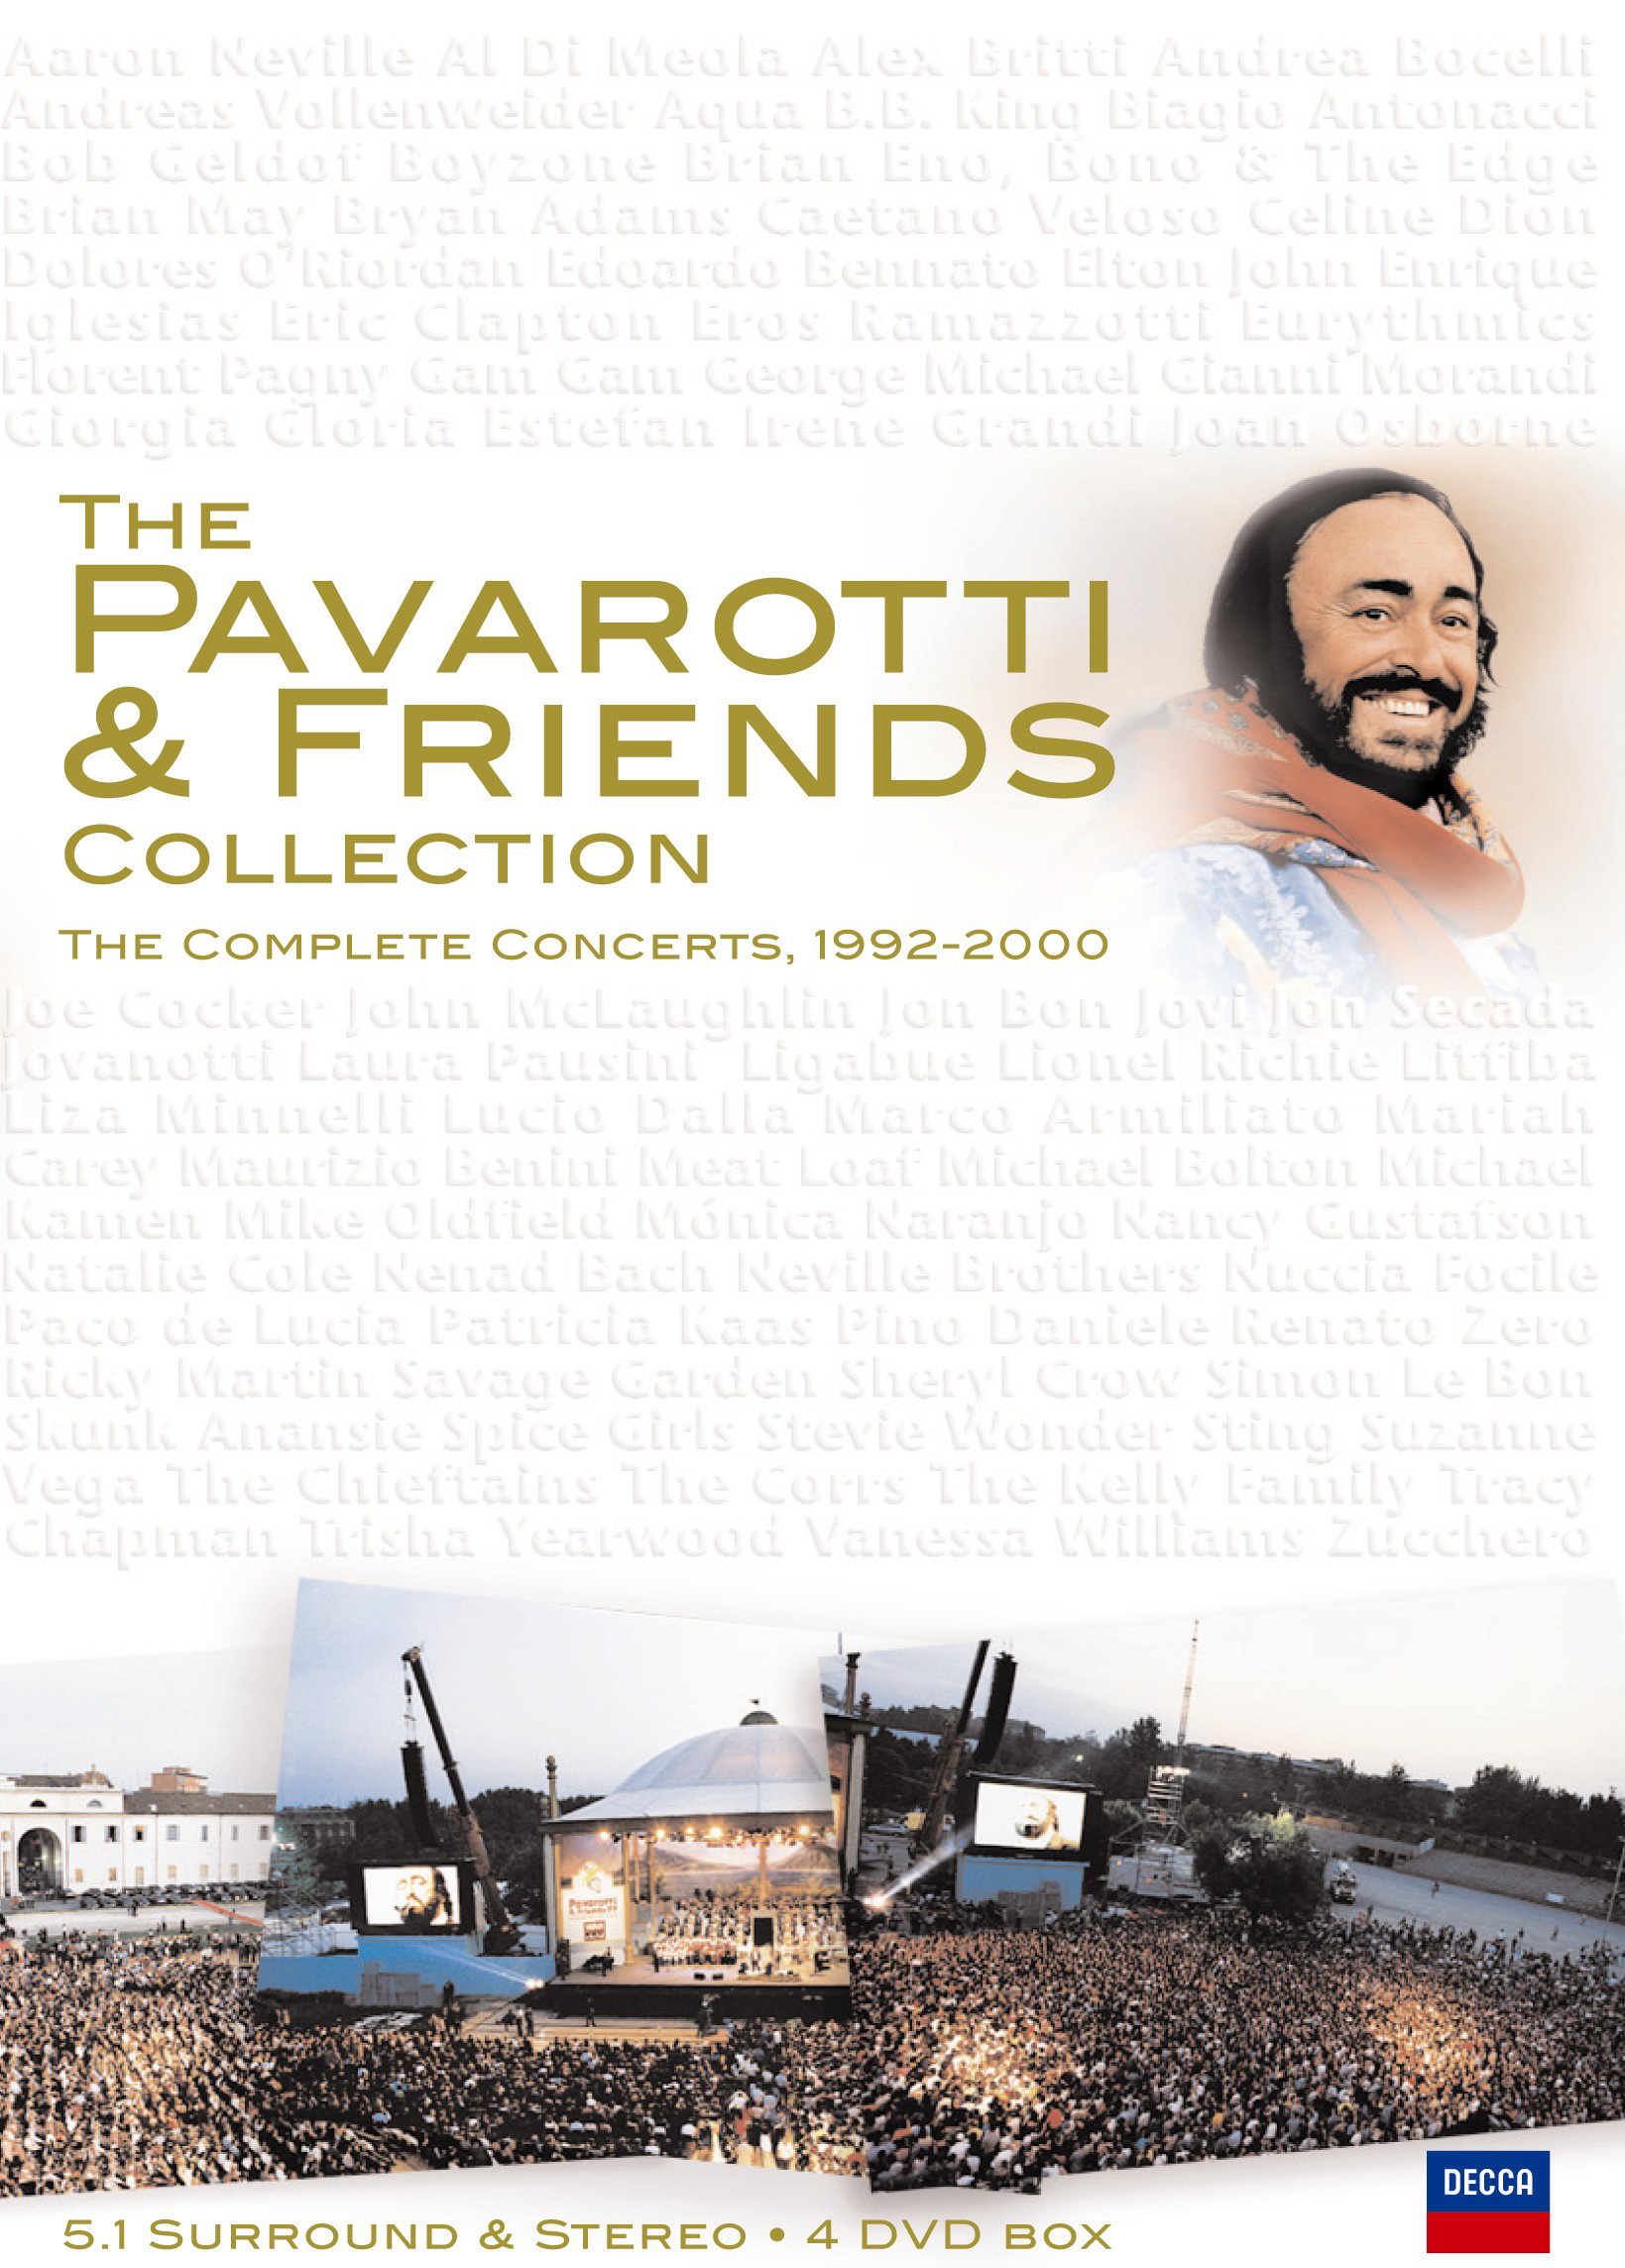 The Pavarotti & Friends